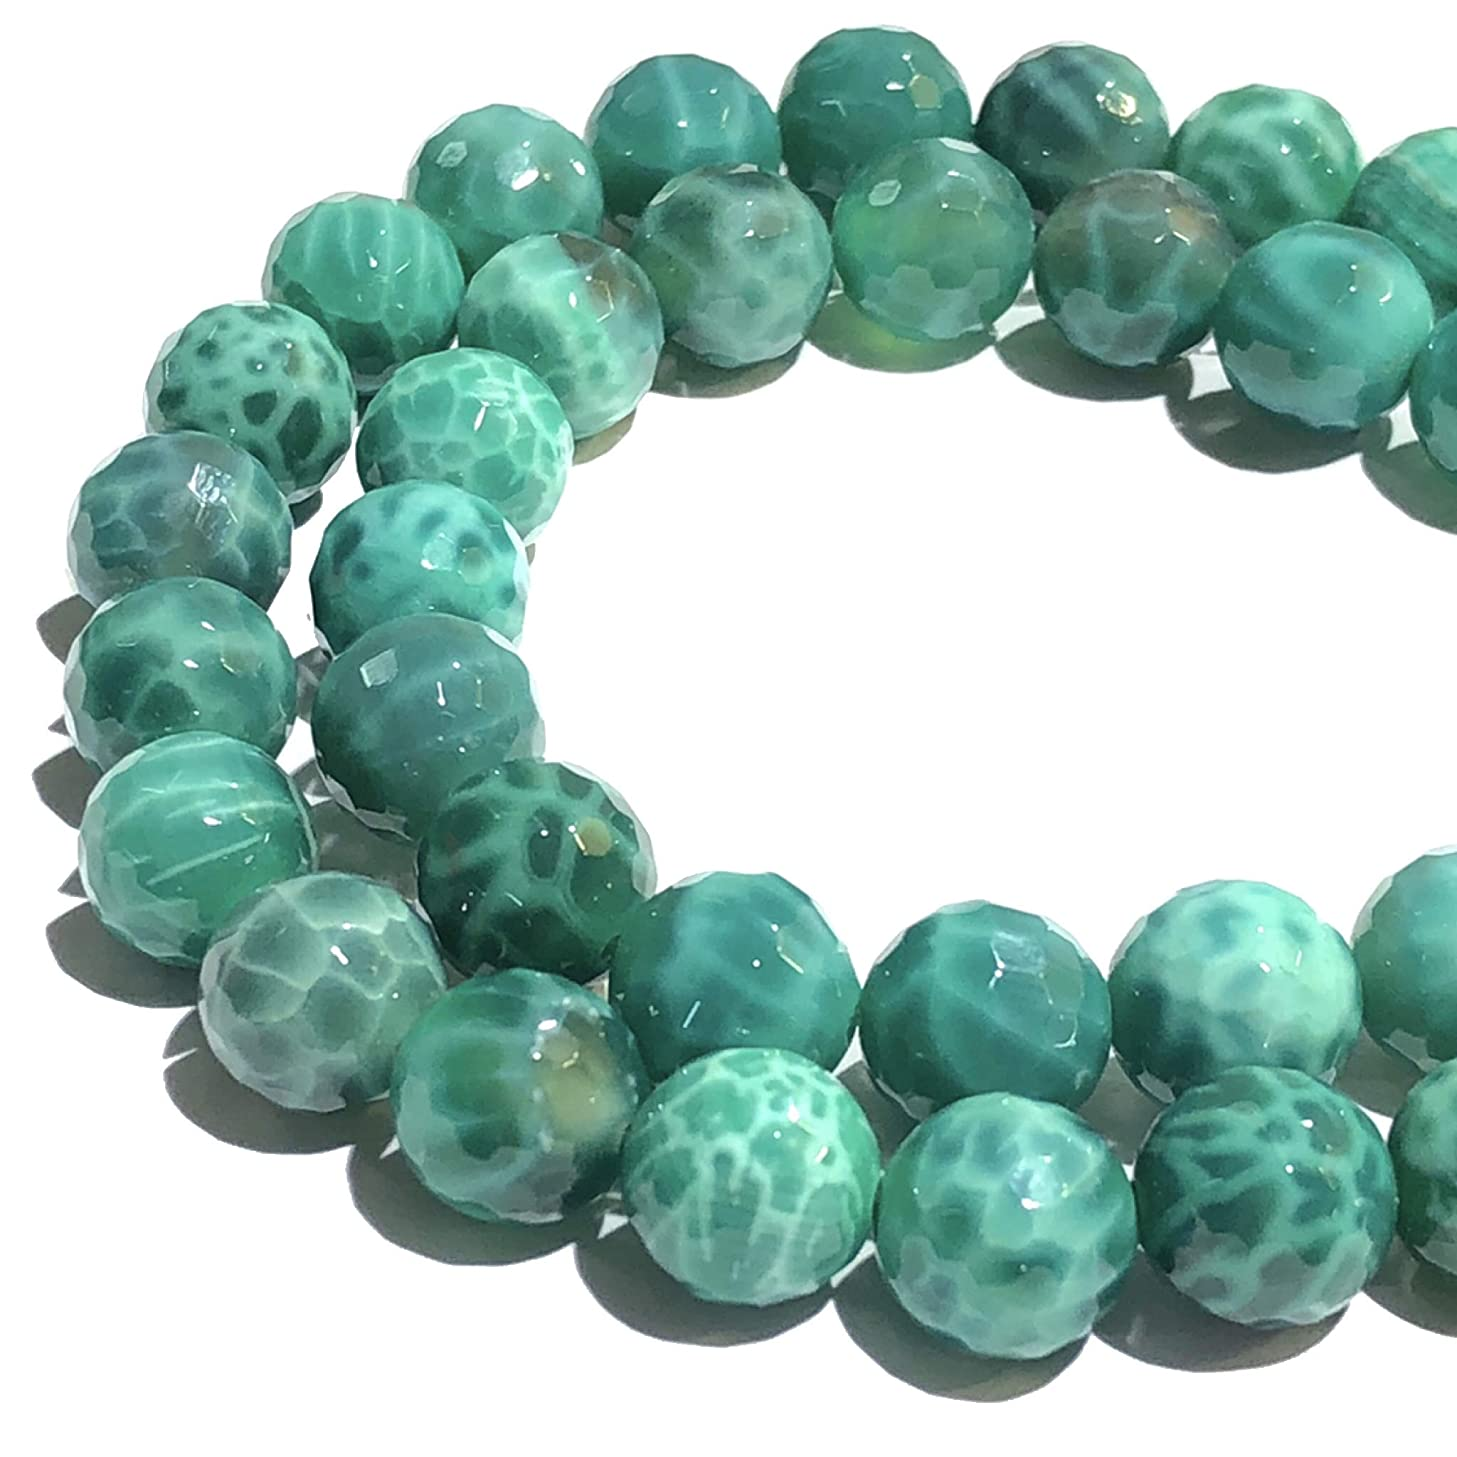 [ABCgems] African Peacock Agate (Exquisite Color & Beautiful Inclusions) 10mm Faceted Round Beads for Beading & Jewelry Making